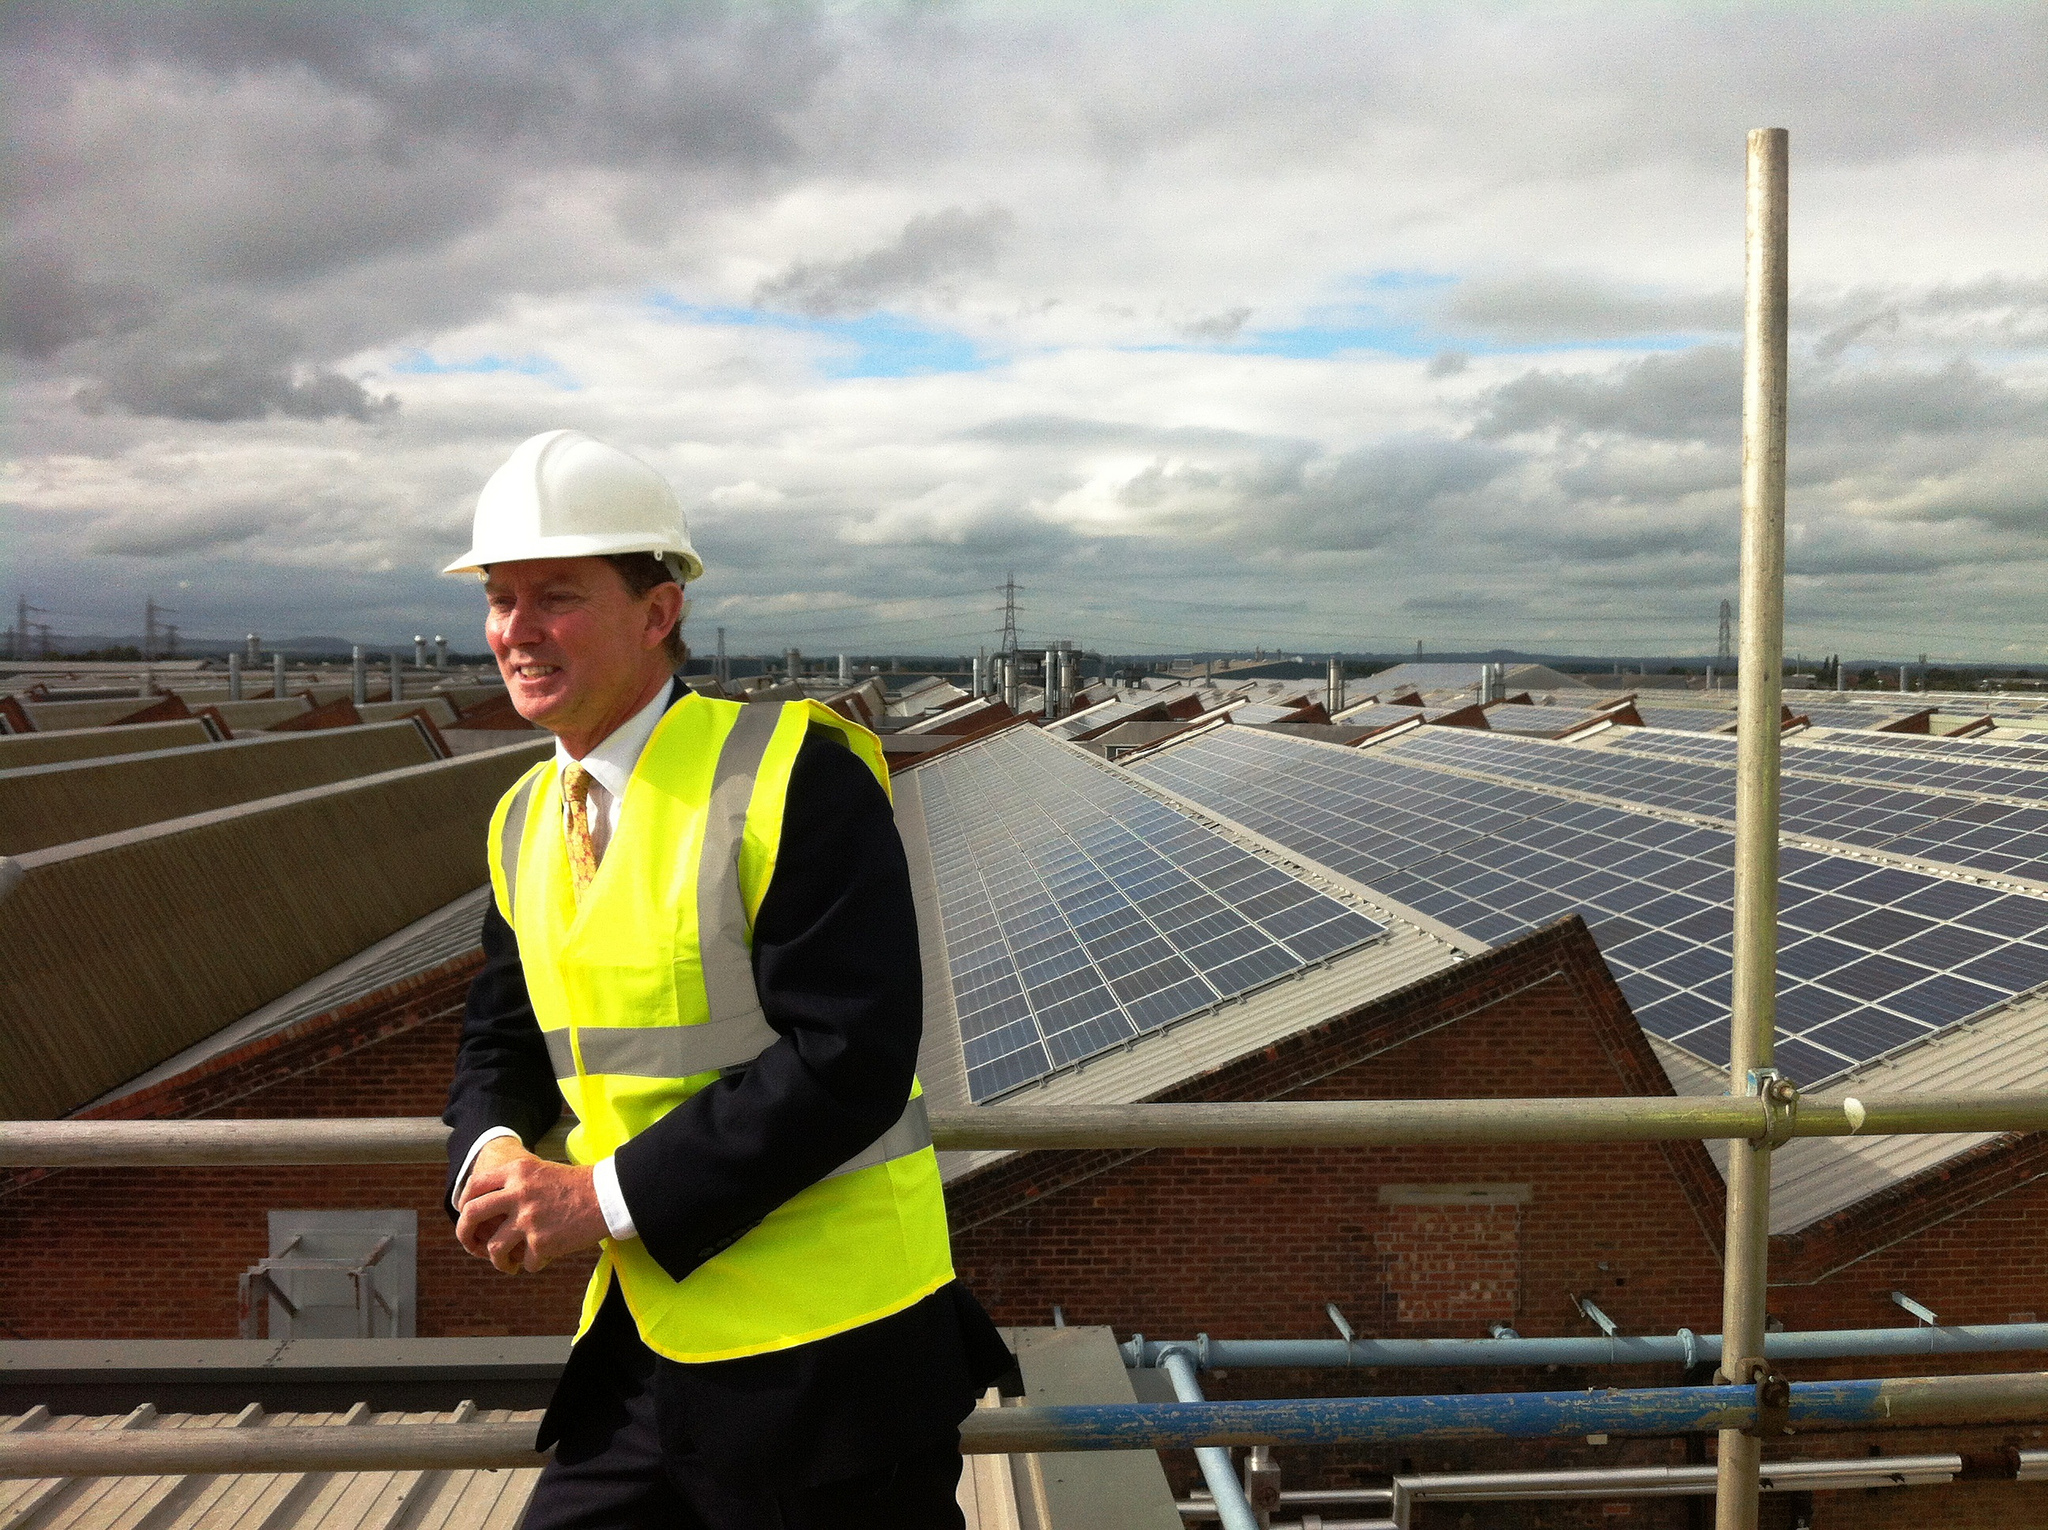 Minister Gregory Barker visits what was then the UK's largest rooftop solar array at Bentley Motors in Crewe, October 2013. Photo: DECC via Flickr (CC BY-ND).